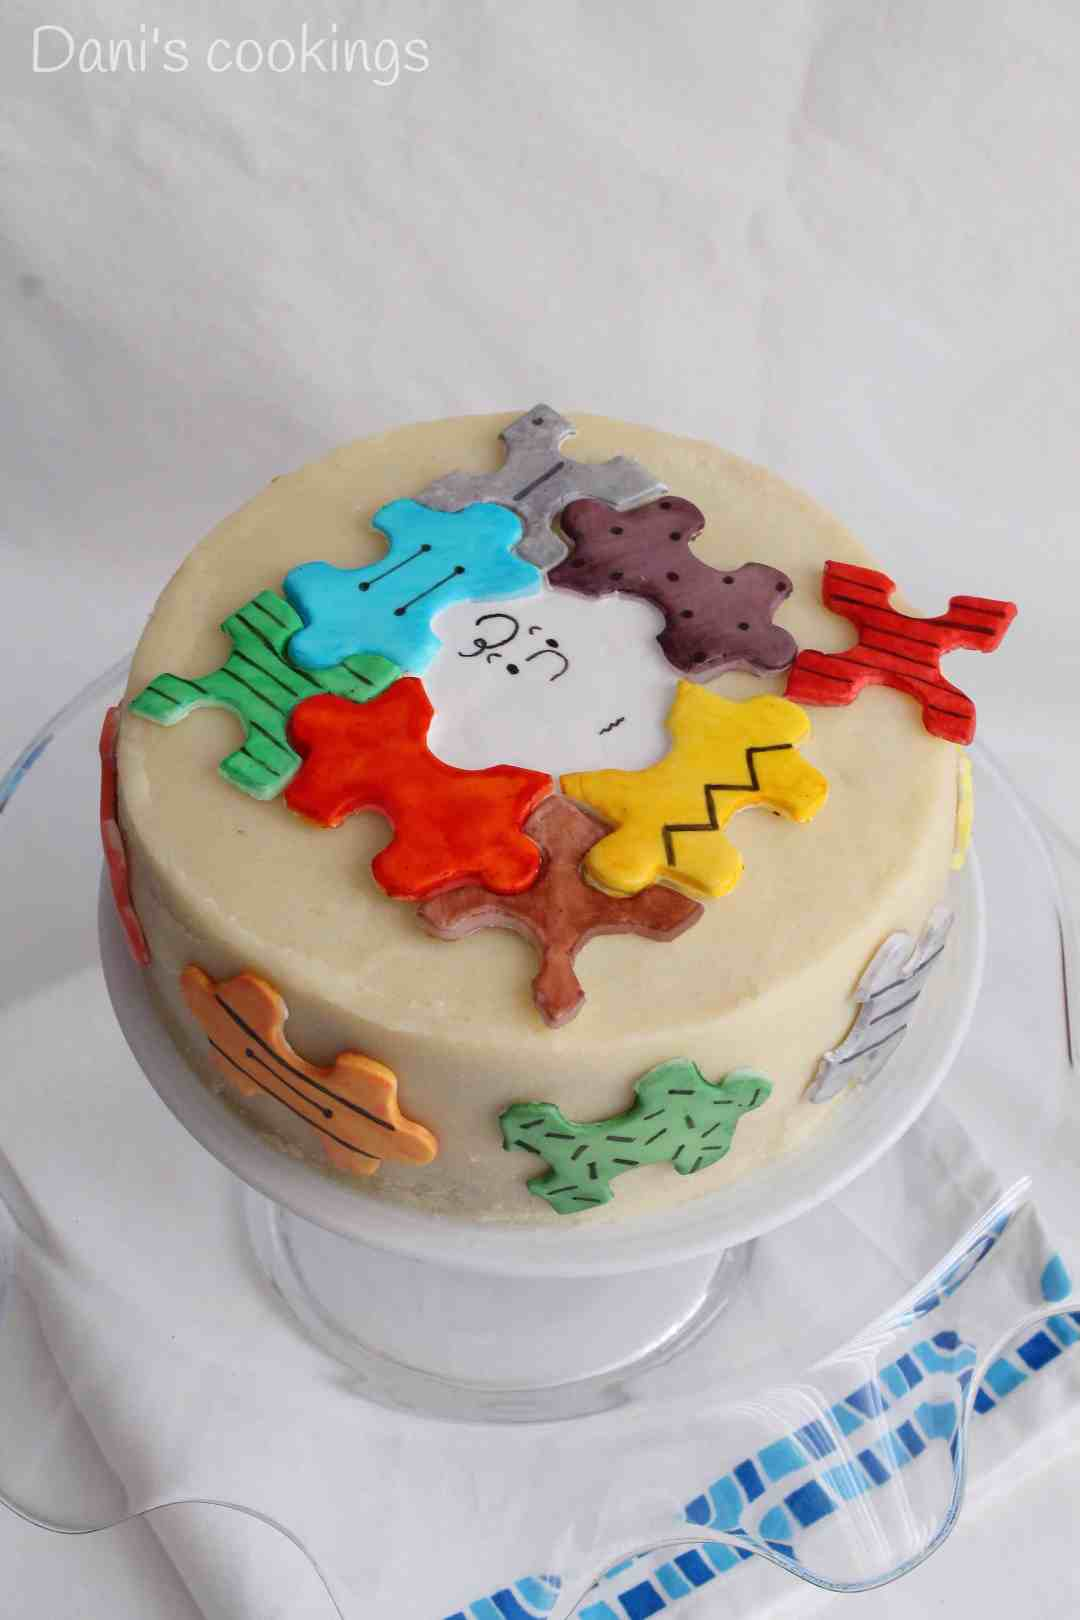 Funny and pretty puzzle cake with ricotta filling and buttercream frosting